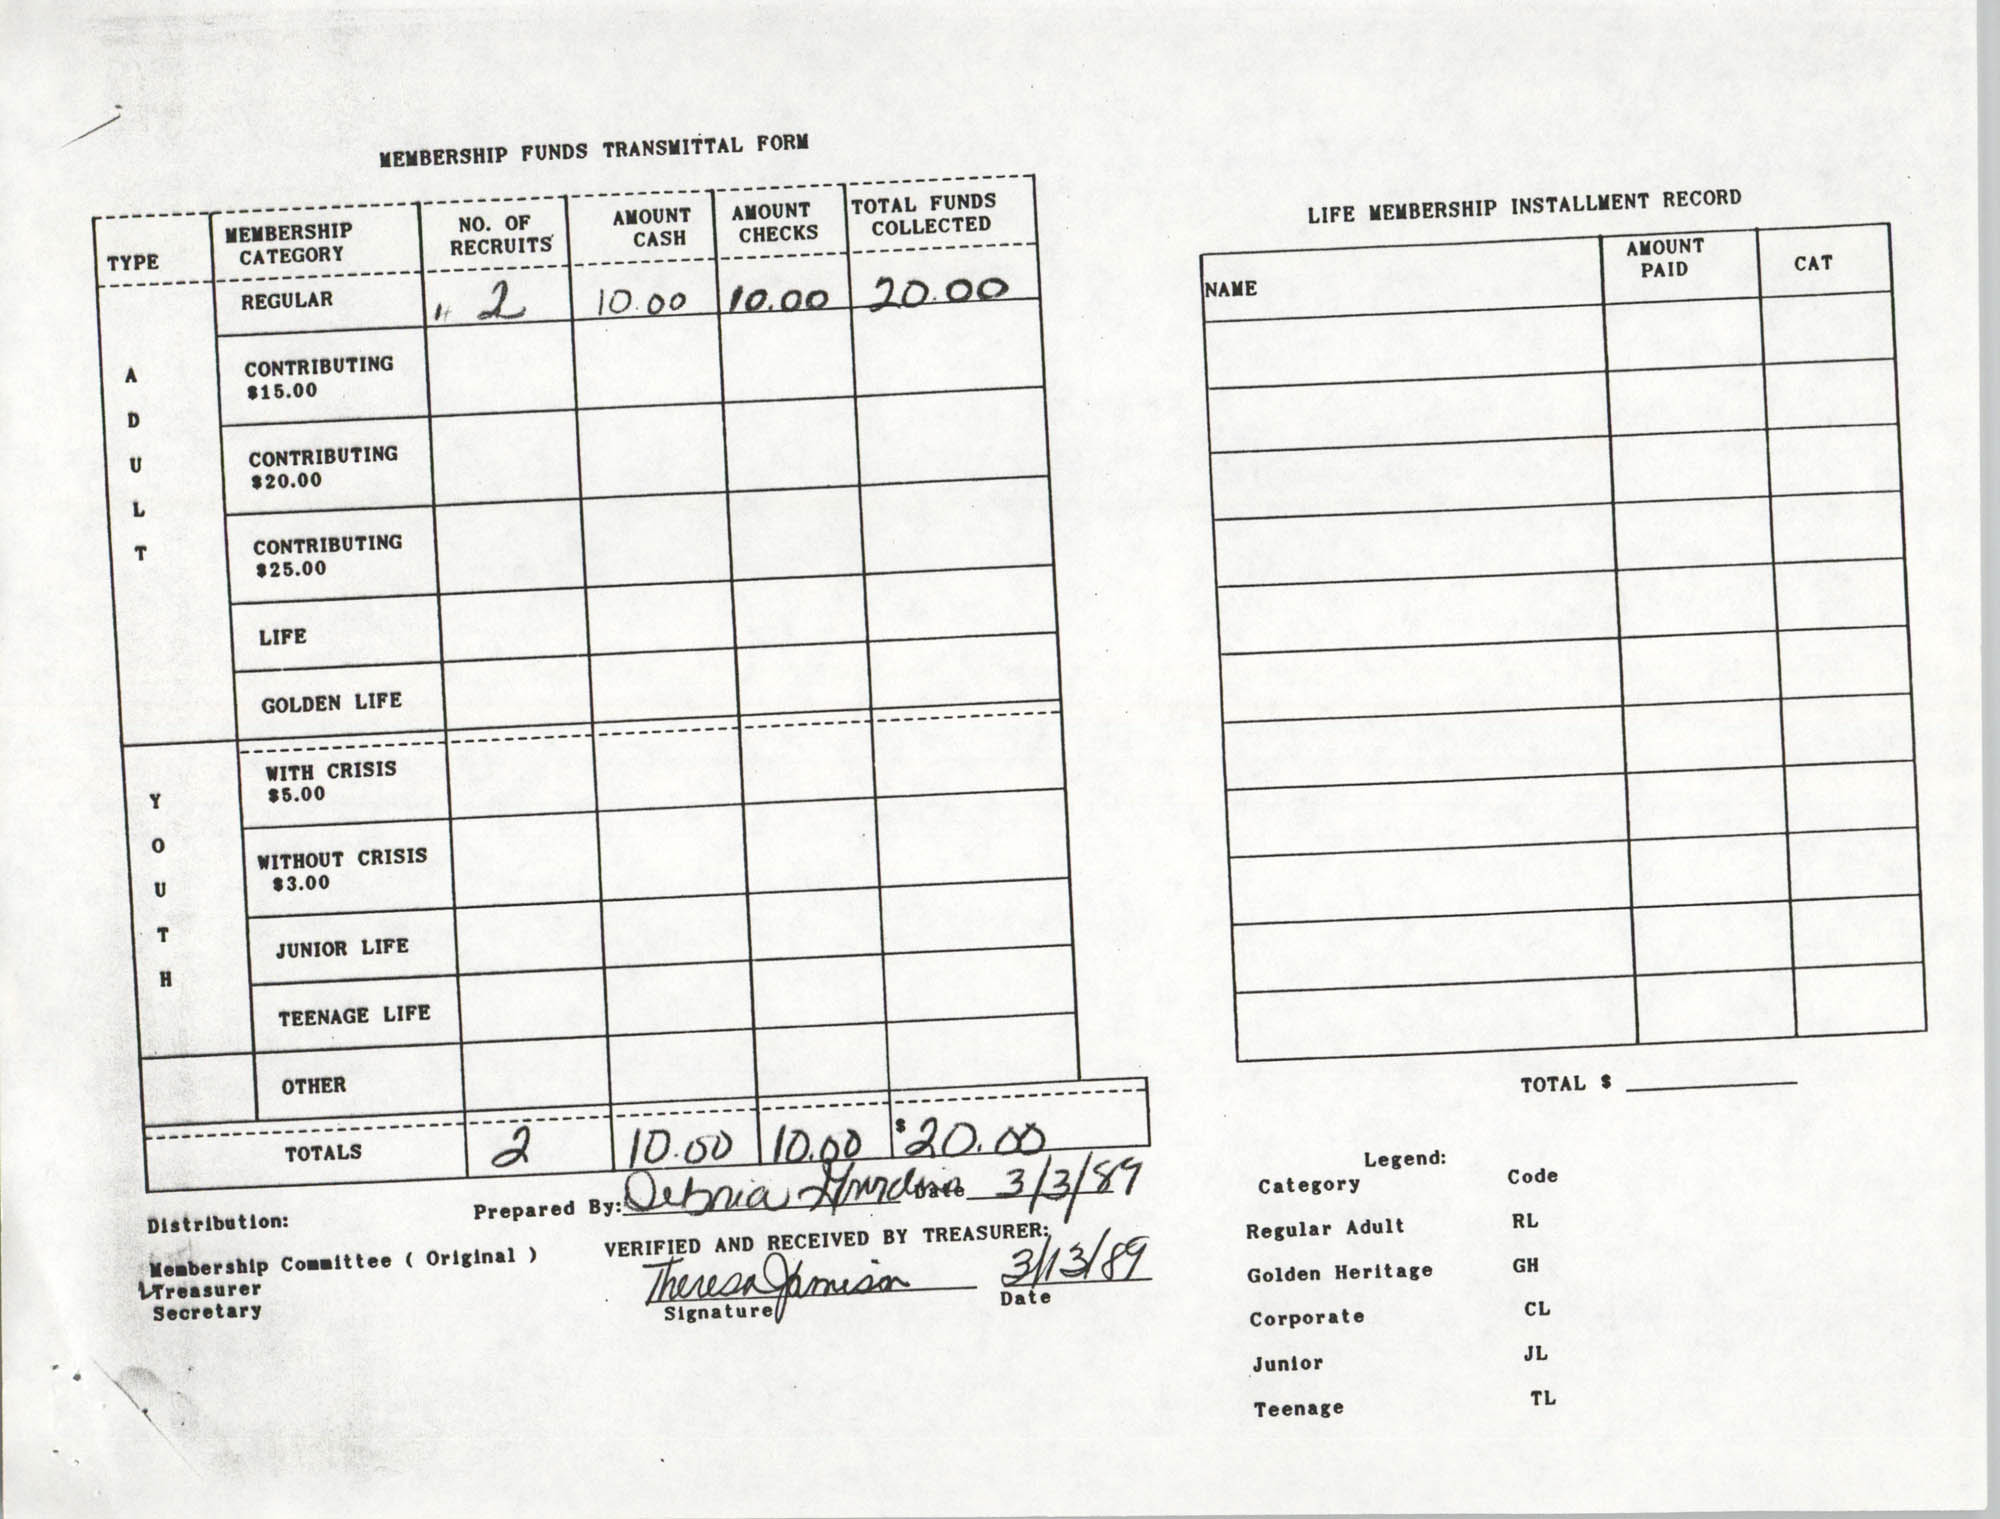 Charleston Branch of the NAACP Funds Transmittal Forms, March 1989, Page 2